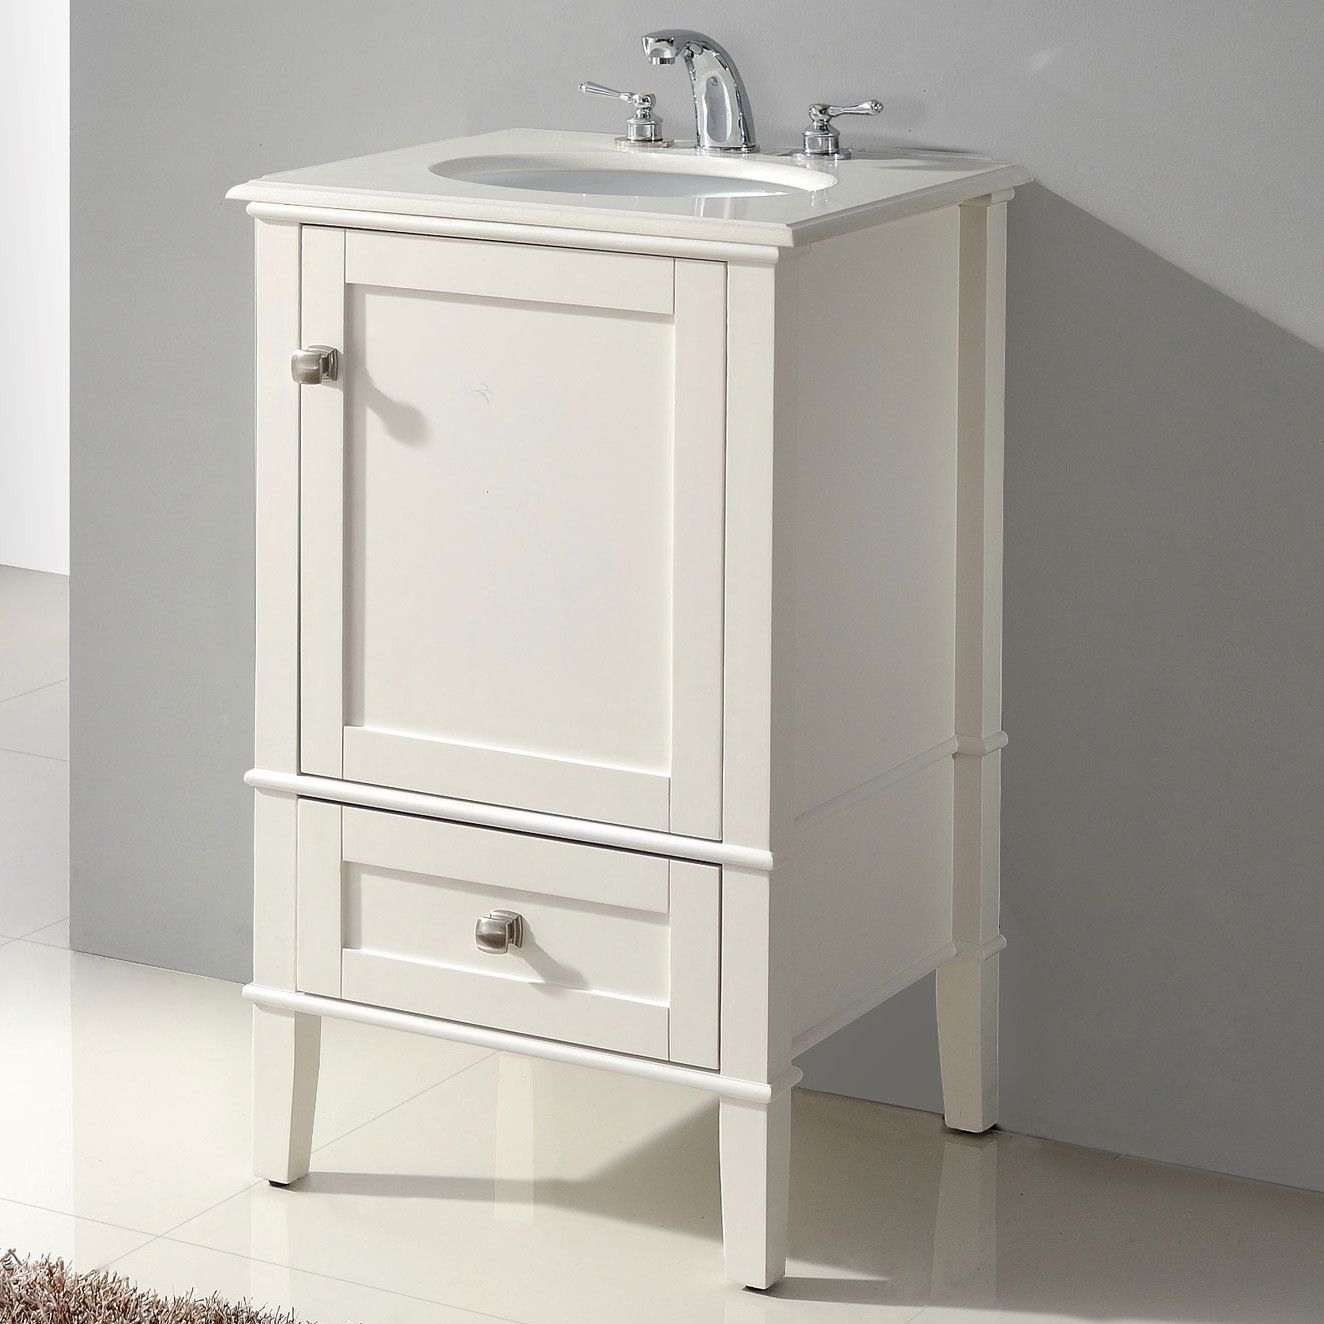 21 Inch Single Bathroom Vanity Set With Off White Marble Top 20